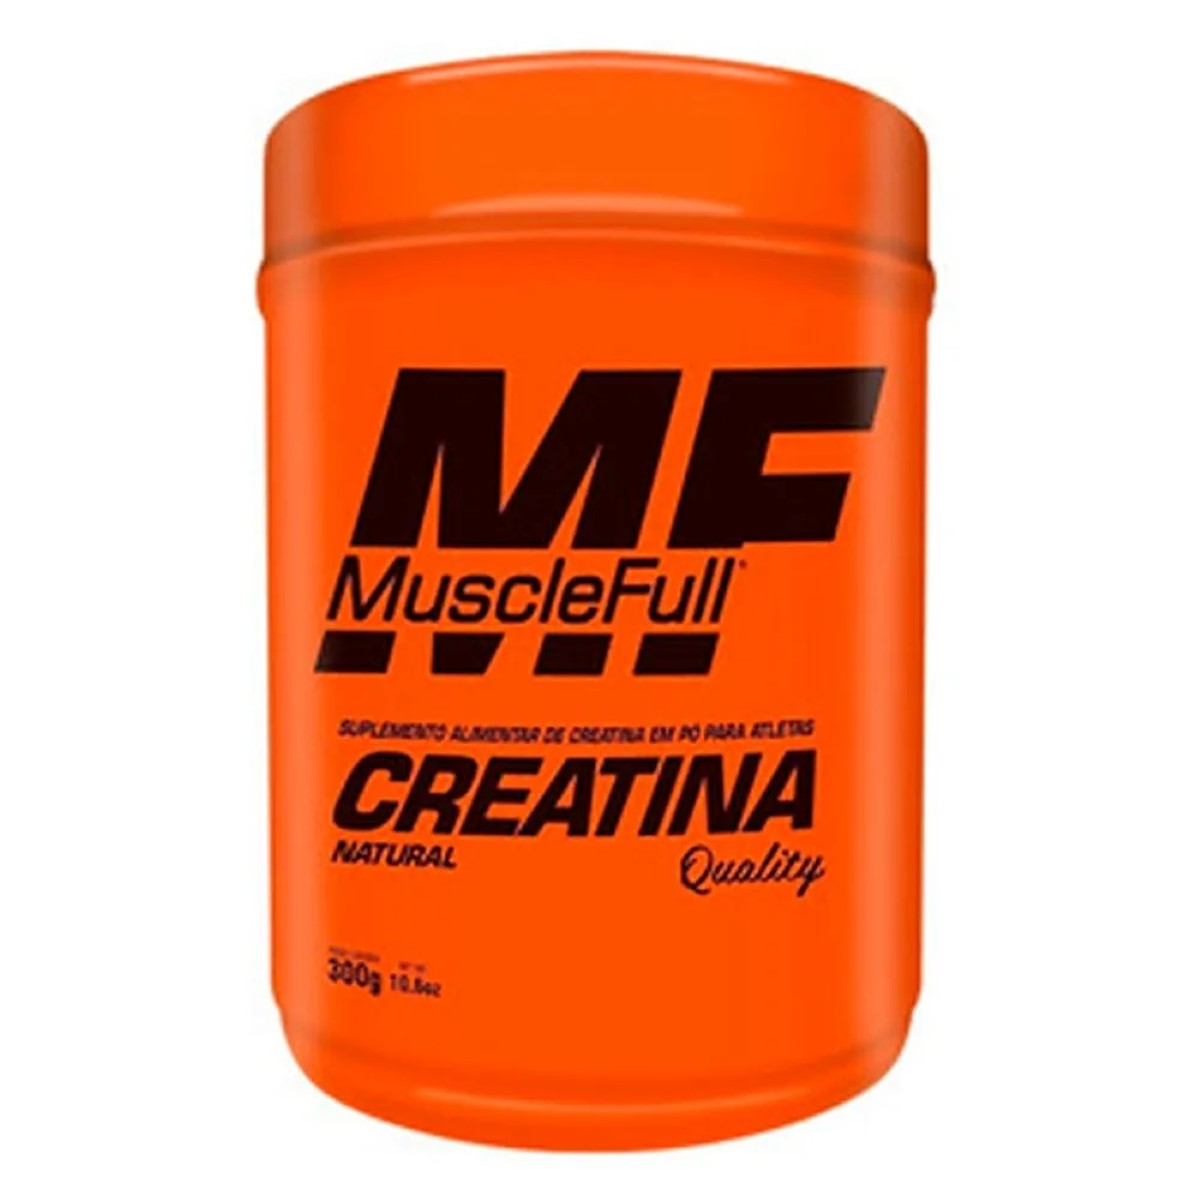 Creatina Quality MuscleFull - 300g